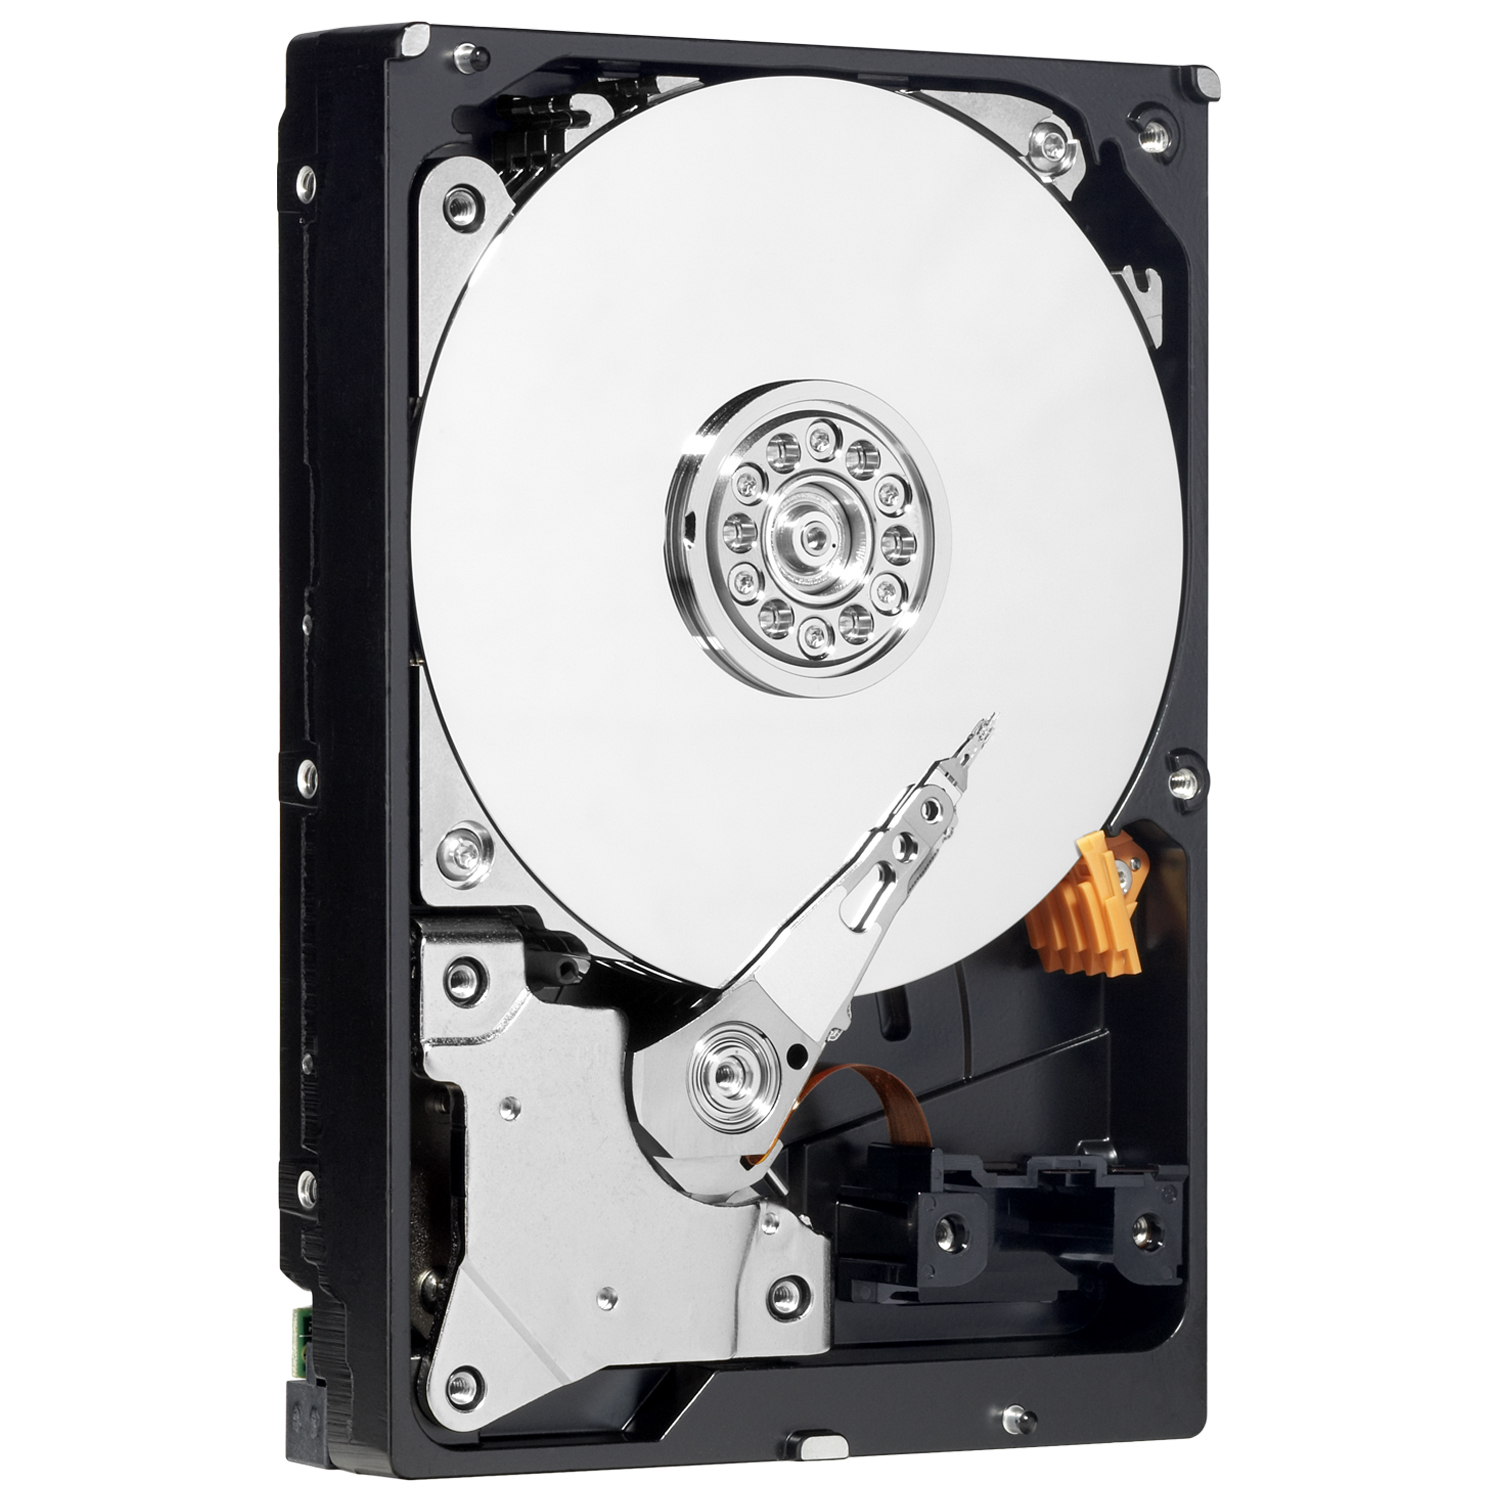 WESTERN DIGITAL AV-GP 3000GB SERIAL ATA III INTERNAL HARD DRIVE